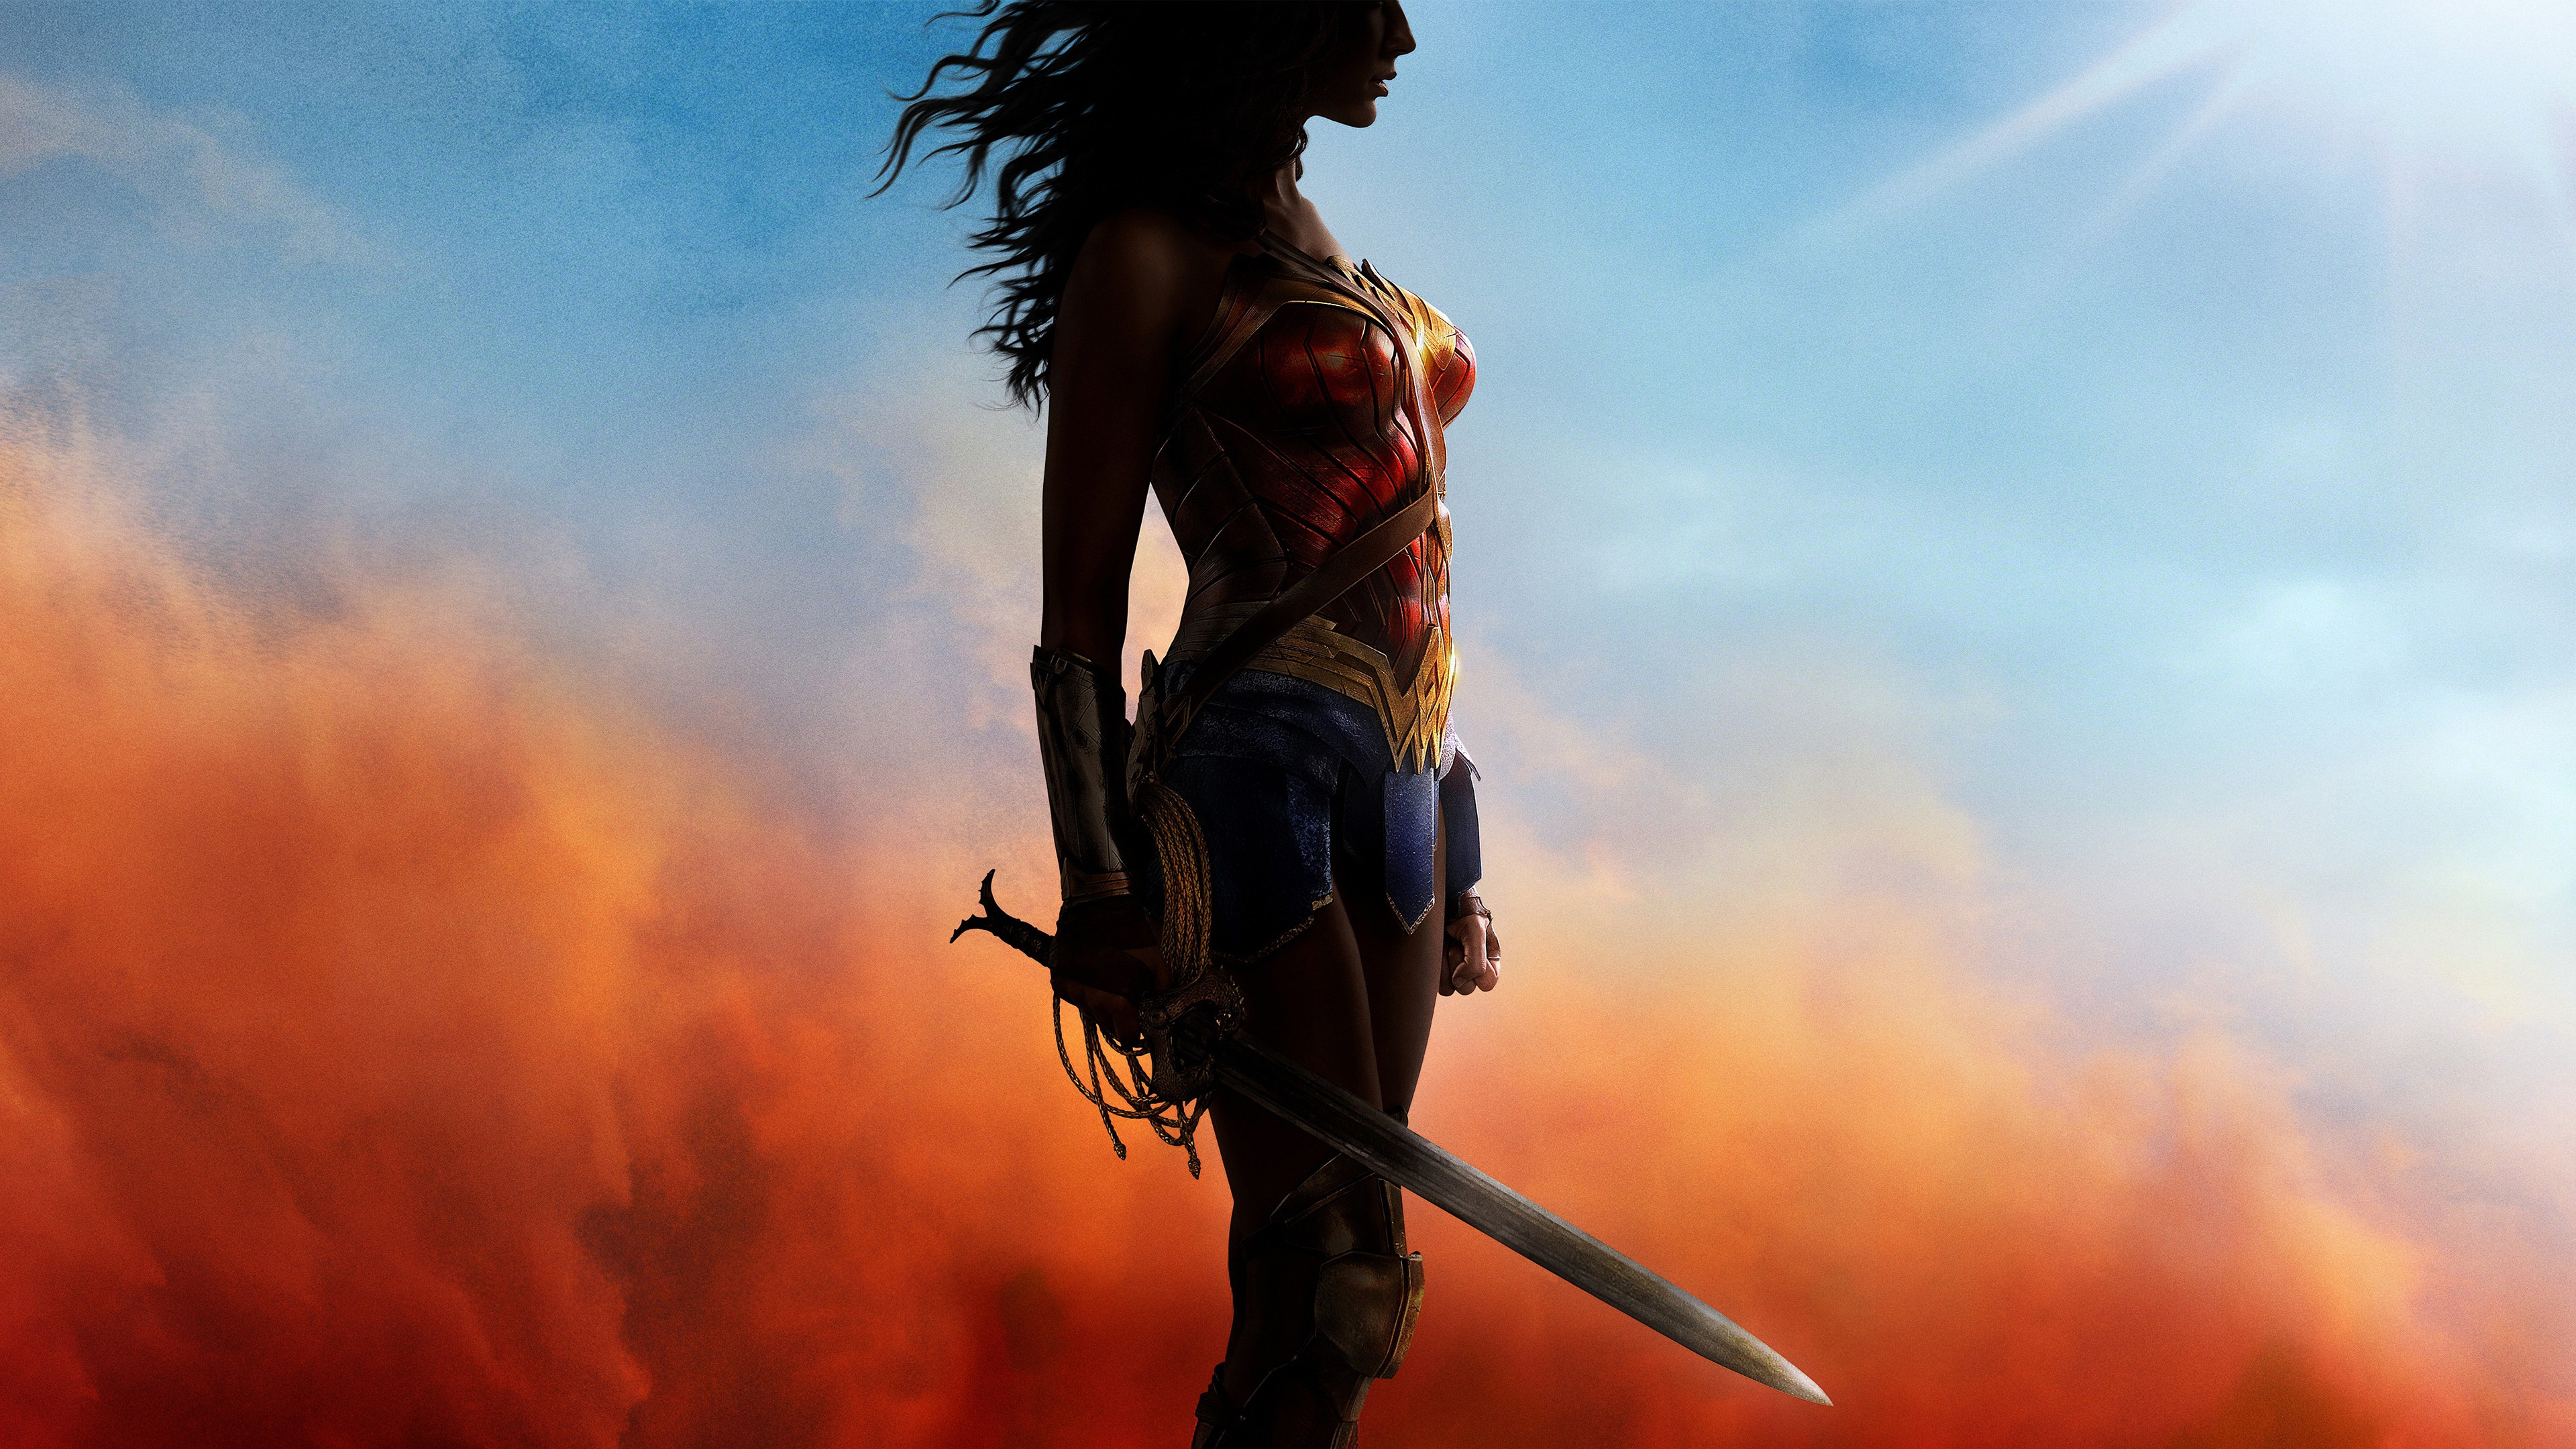 Wonder Woman Wallpaper Iphone 2017 Wonder Woman Wallpapers Hd Wallpapers Id 18453